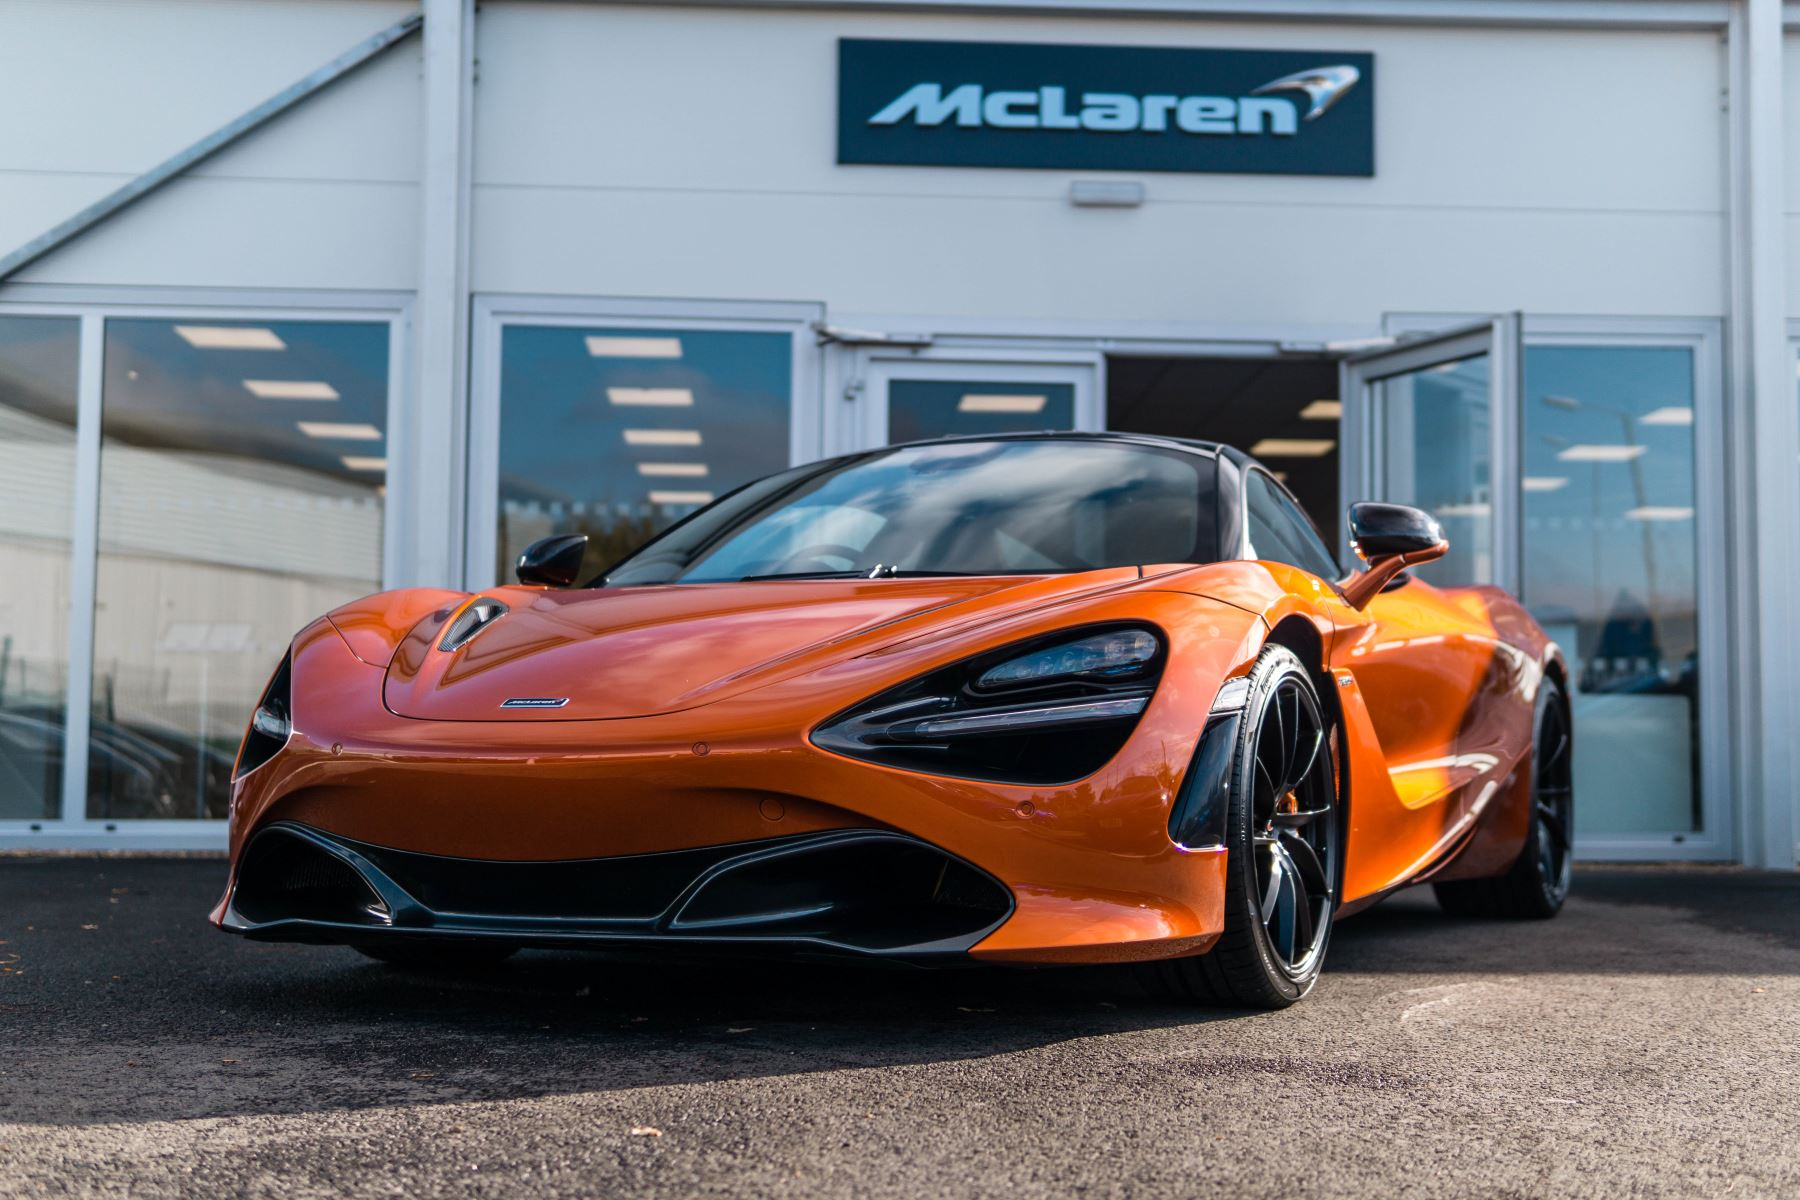 McLaren 720S V8 2dr SSG PERFORMANCE 4.0 Automatic Coupe (2018) image